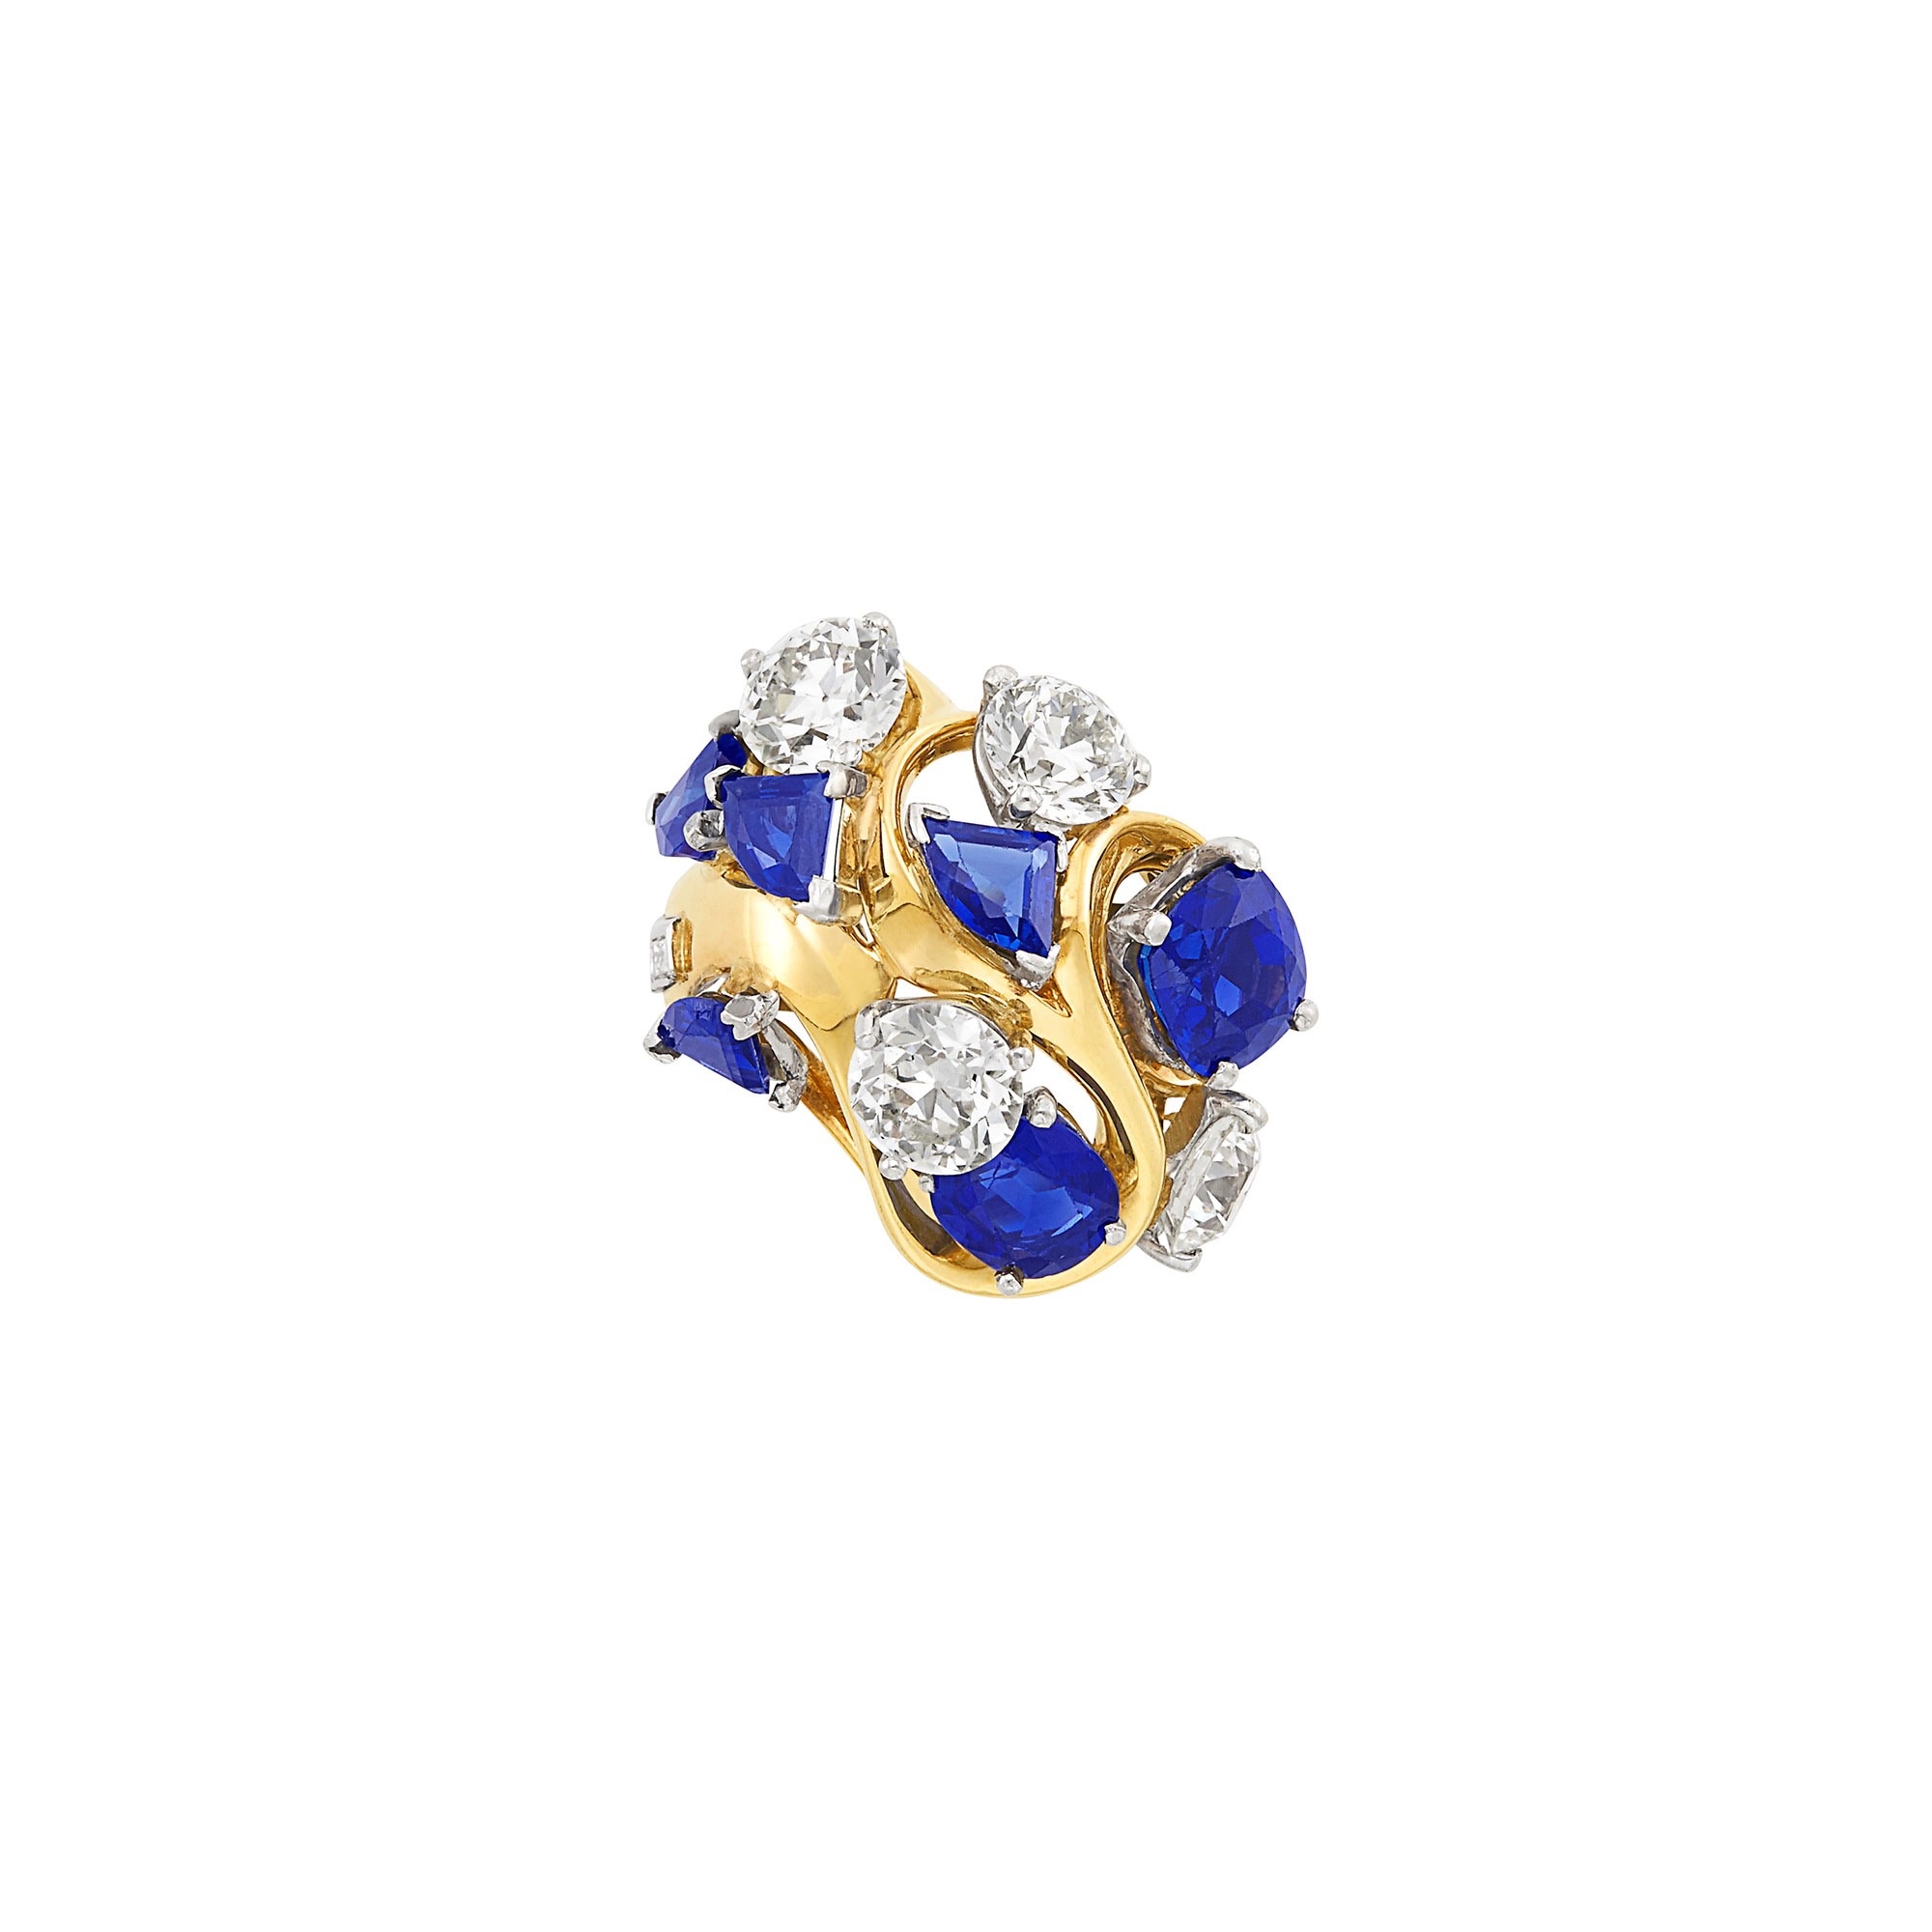 Lot image - Gold, Platinum, Sapphire and Diamond Ring